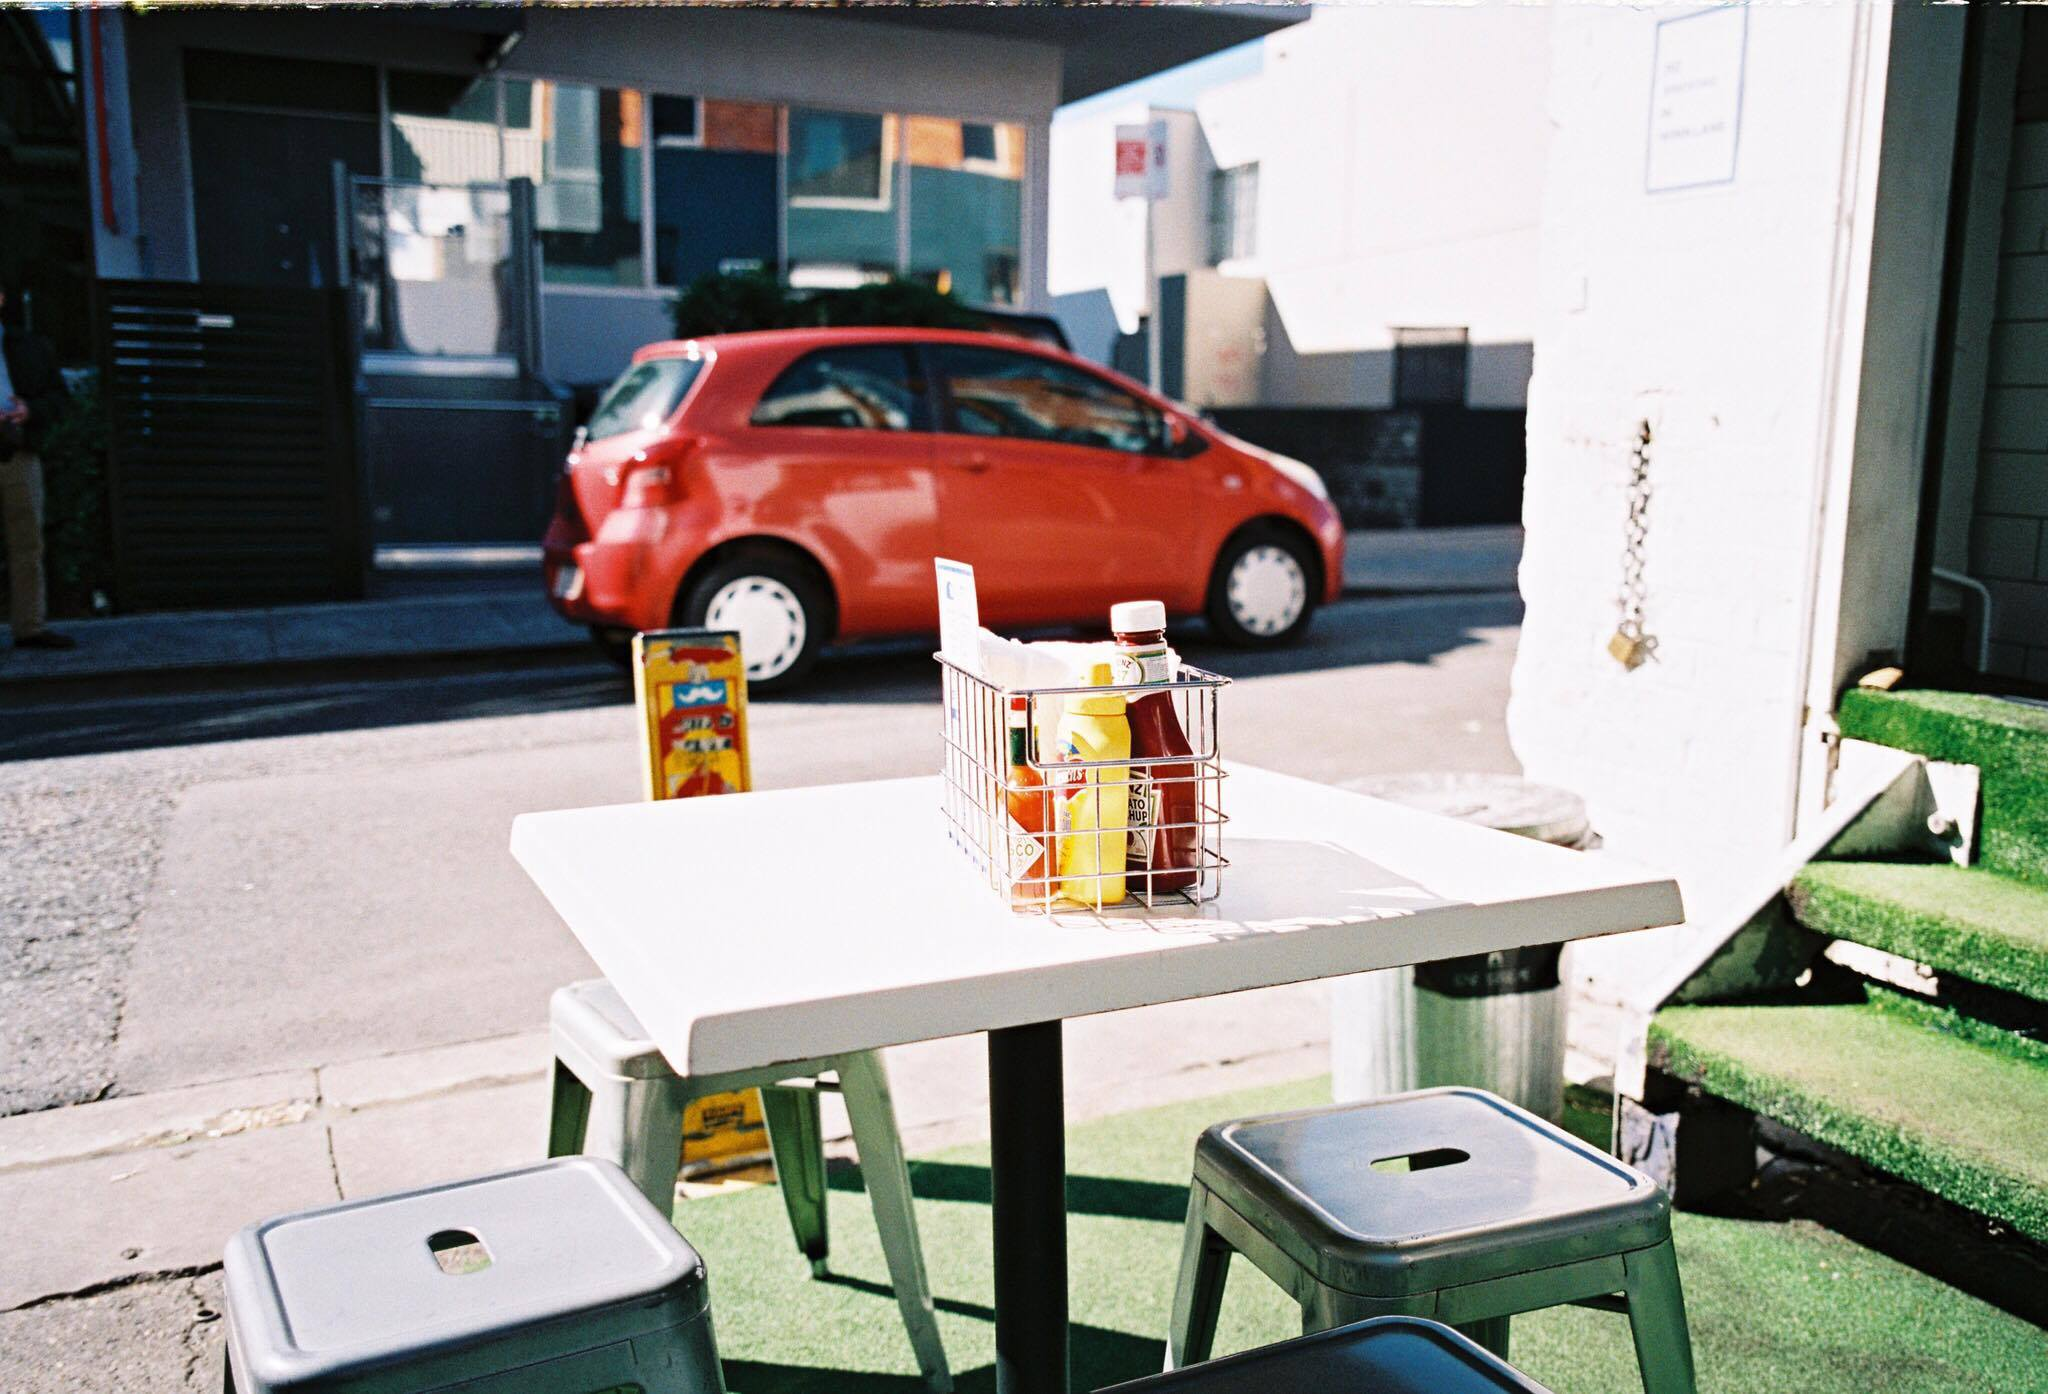 Sunny 16, Contax G2 ISO200